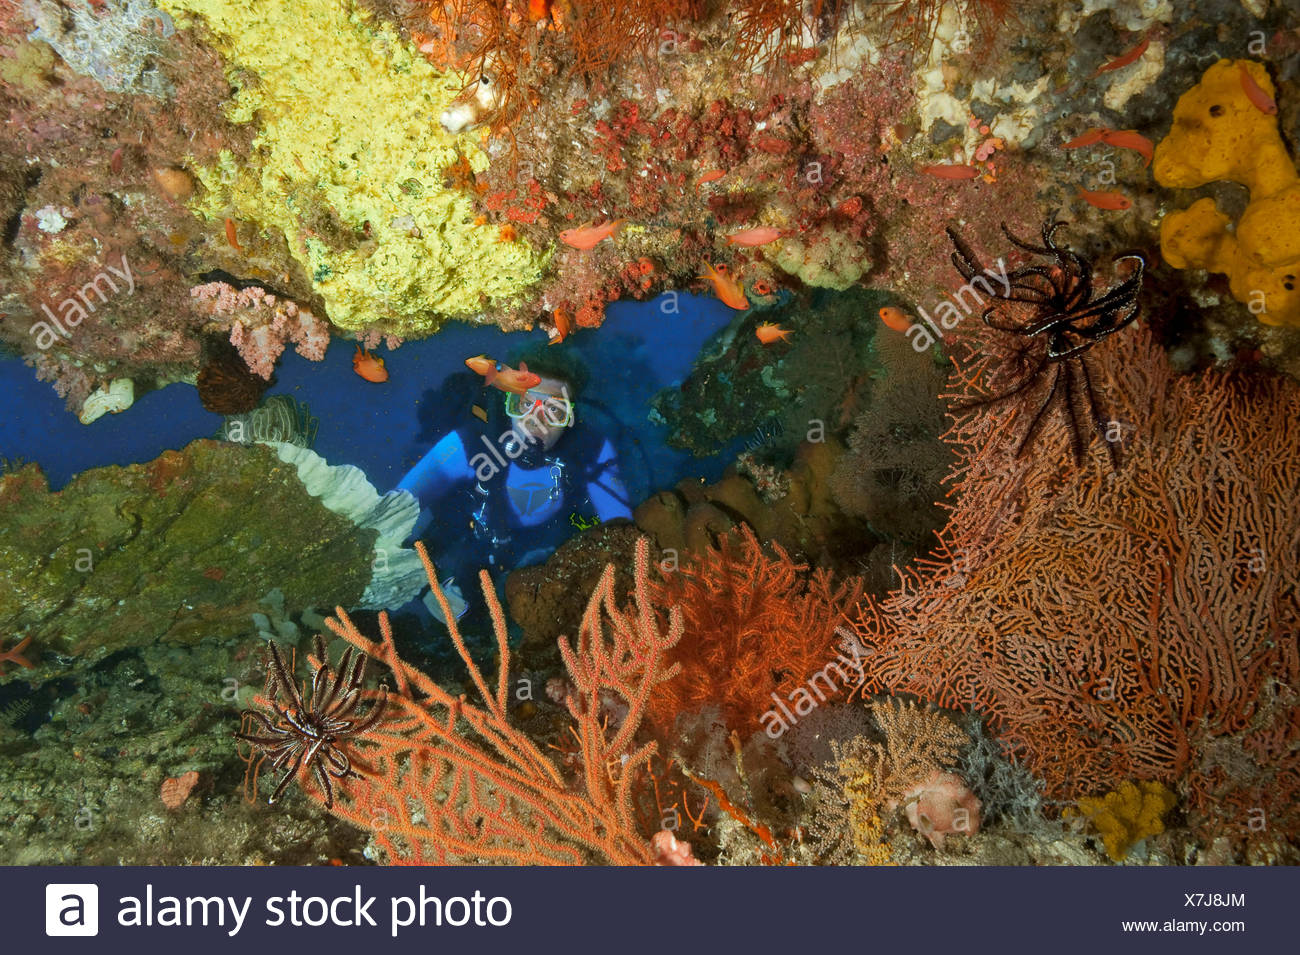 Diver with softcoral, hardcoral, featherstar and anthias, Molukkes, Indonesia, Asia, Pacific / (Cenometra bella), (Pseudanthias squamipinnis) - Stock Image